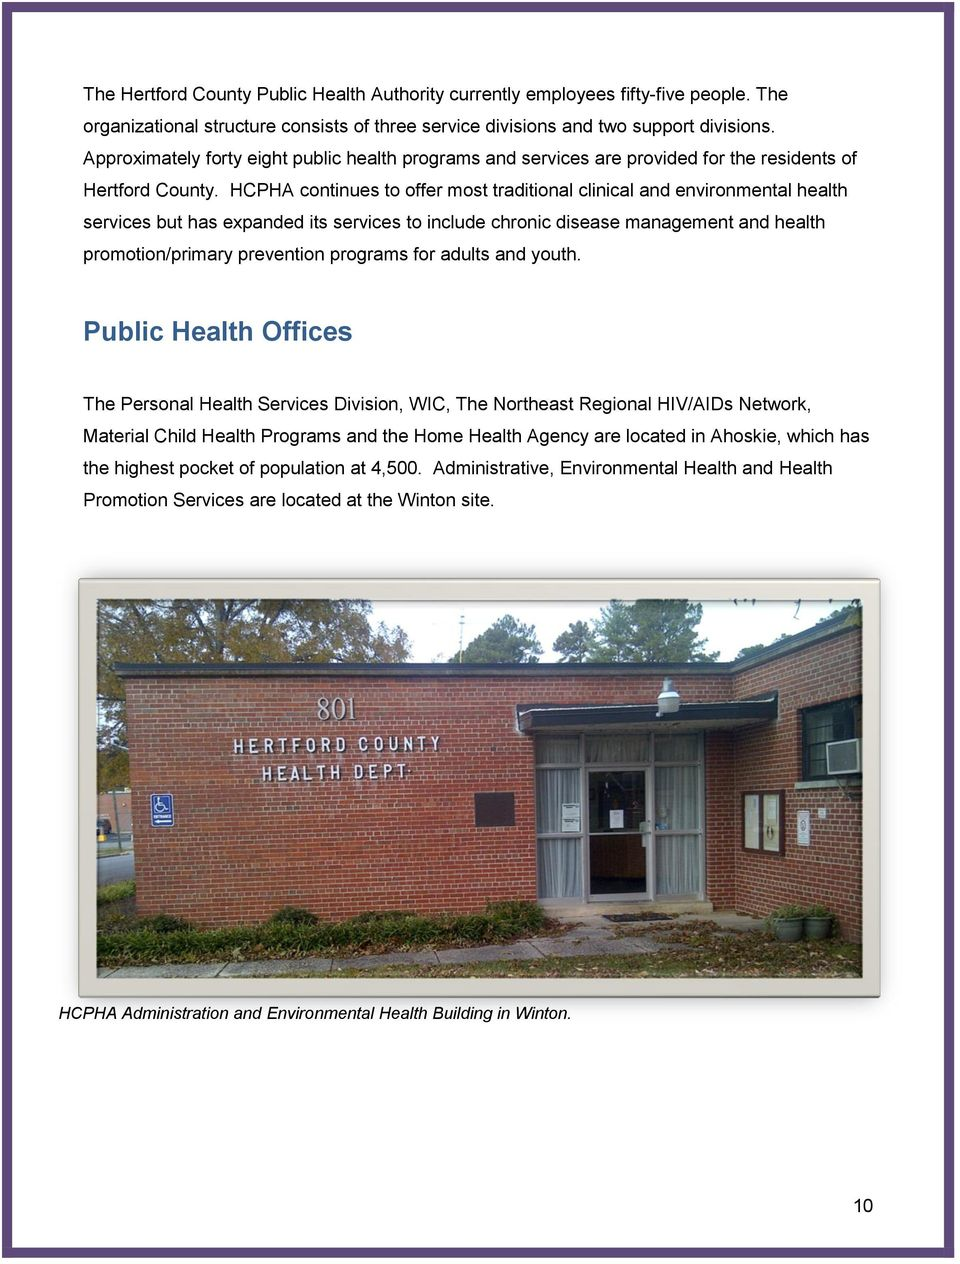 HCPHA continues to offer most traditional clinical and environmental health services but has expanded its services to include chronic disease management and health promotion/primary prevention